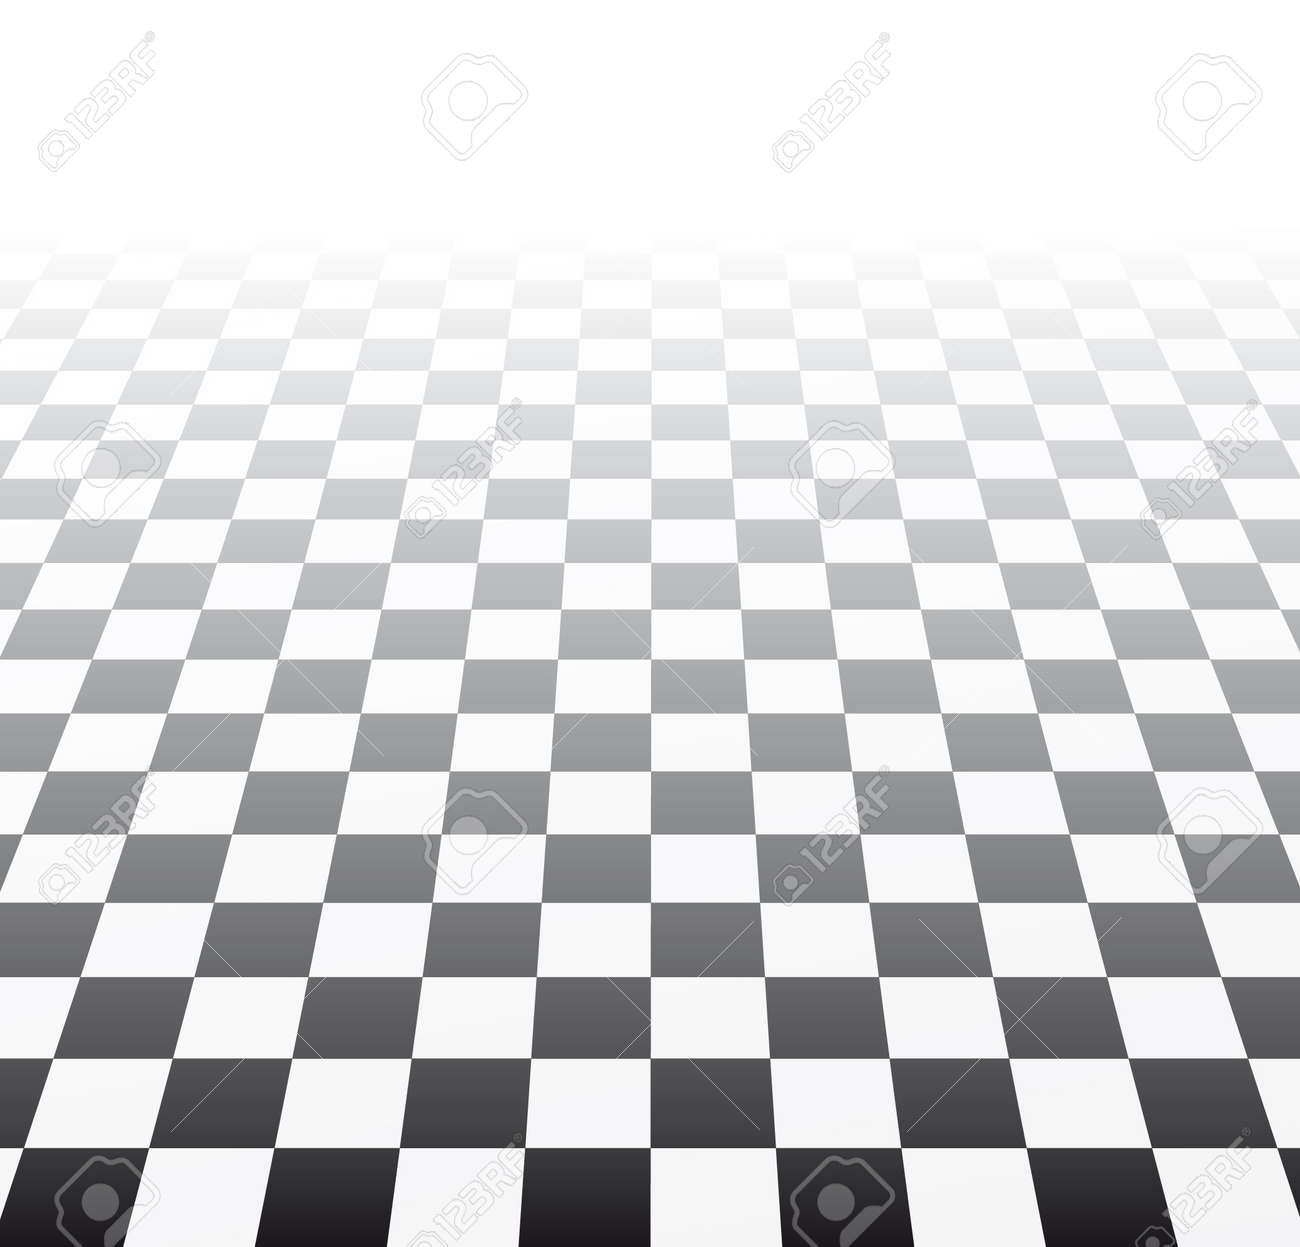 visual effect with chess board royalty free cliparts vectors and